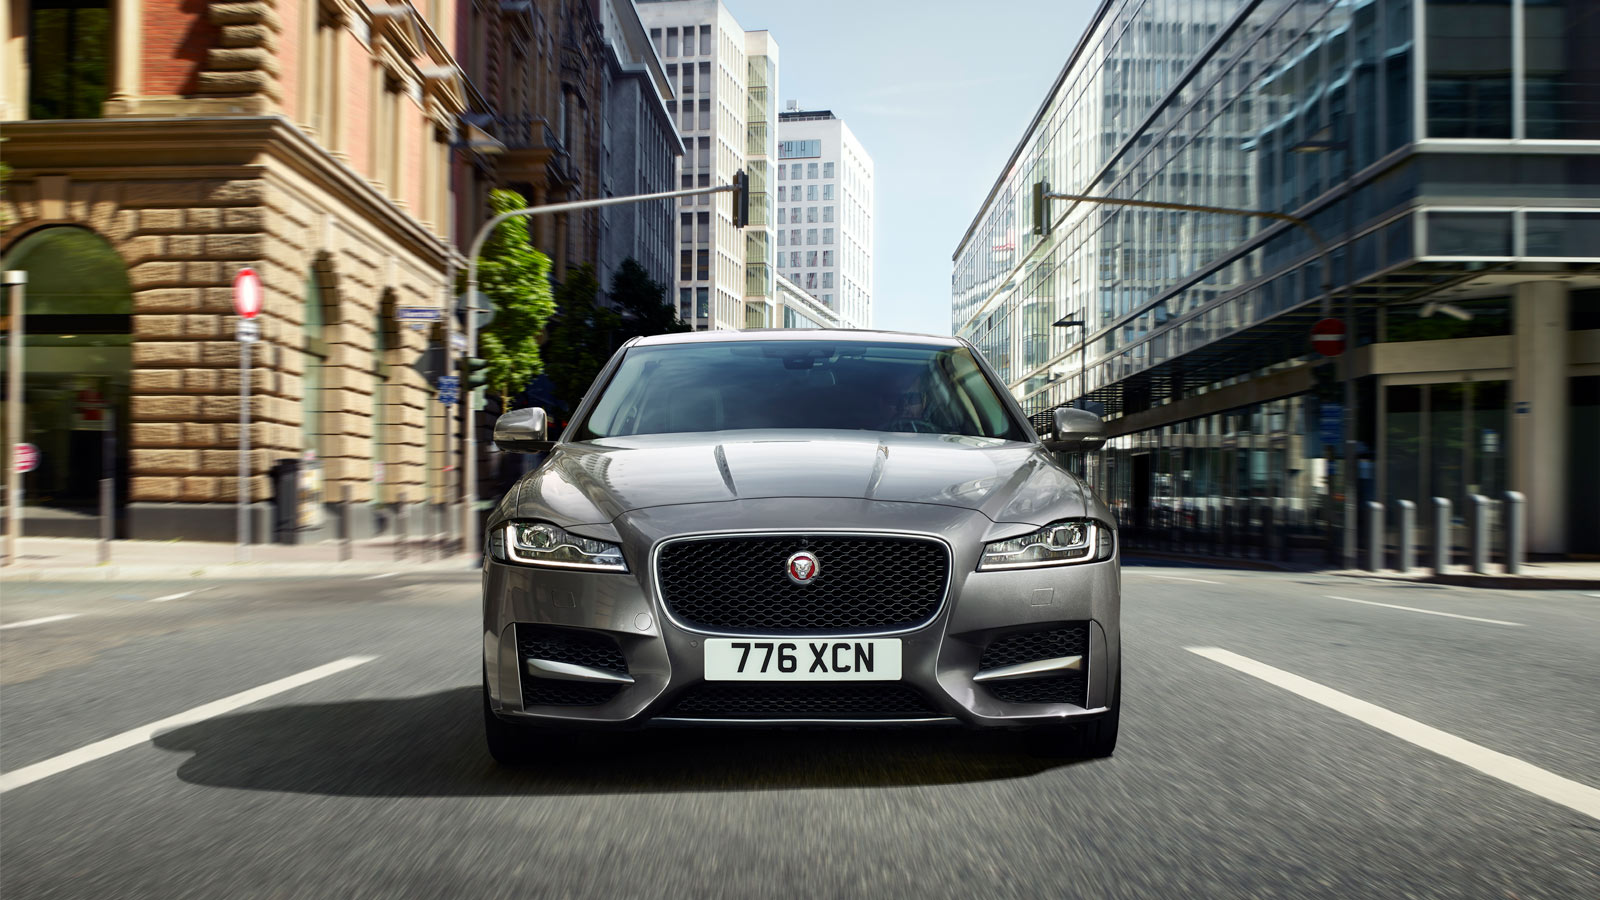 Jaguar XF 2.0d (180) Chequered Flag SPECIAL EDITIONS image 14